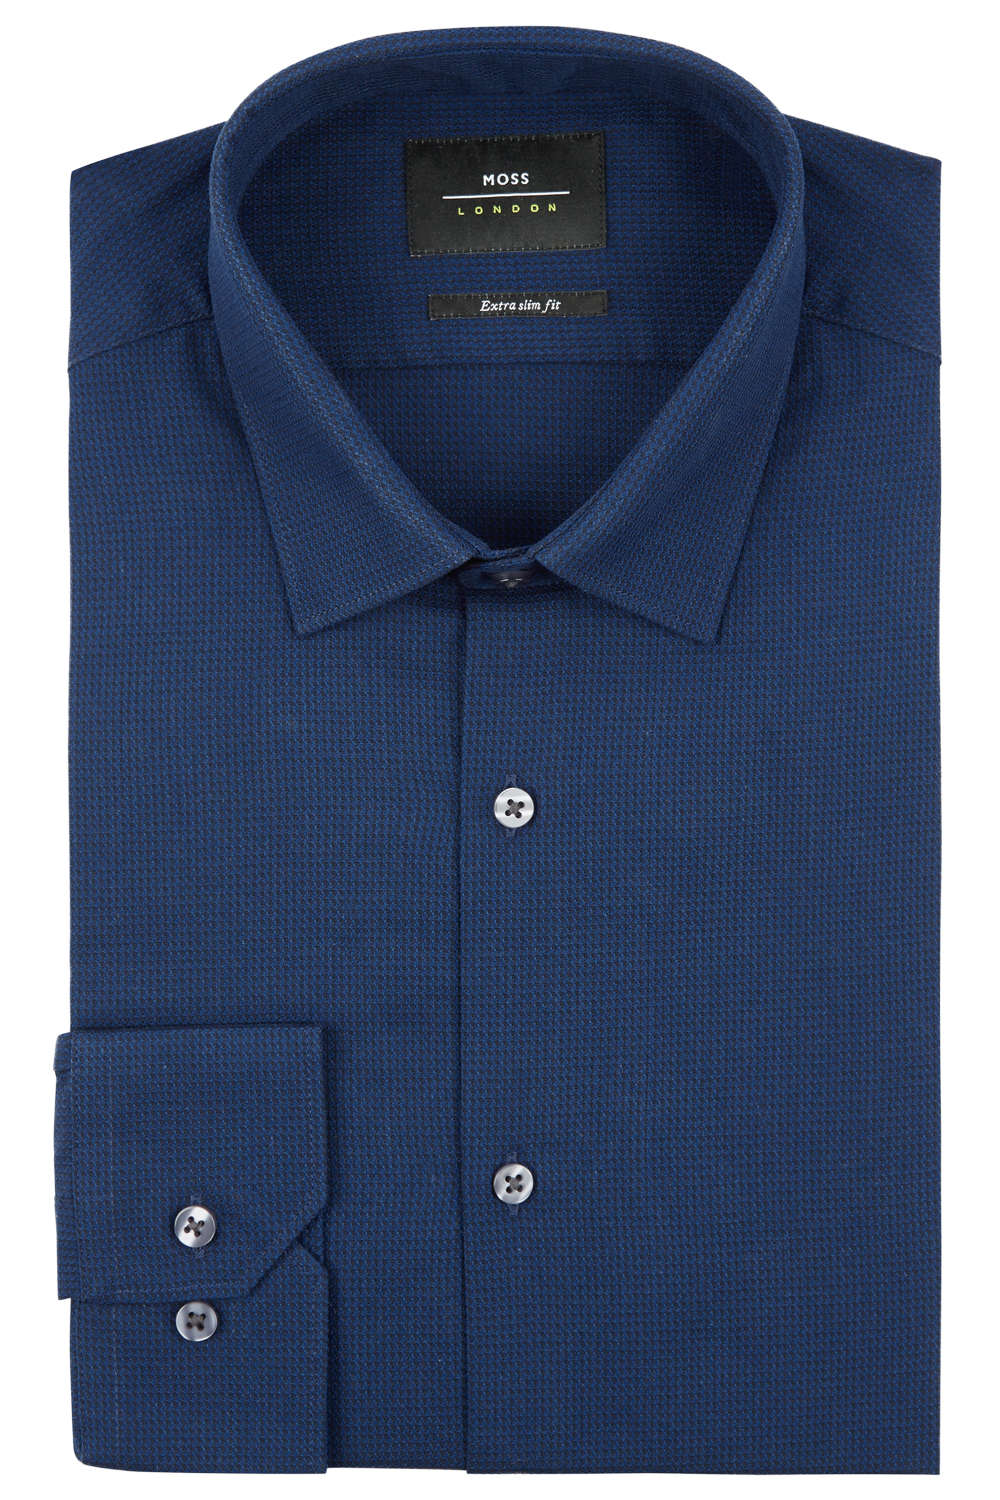 7292f96ef7 Moss Bros Mens Blue Formal Shirt Extra Slim Fit Single Cuff Puppytooth  Textured. Long sleeve; Classic collar; Single cuff; Textured; 100% cotton  ...